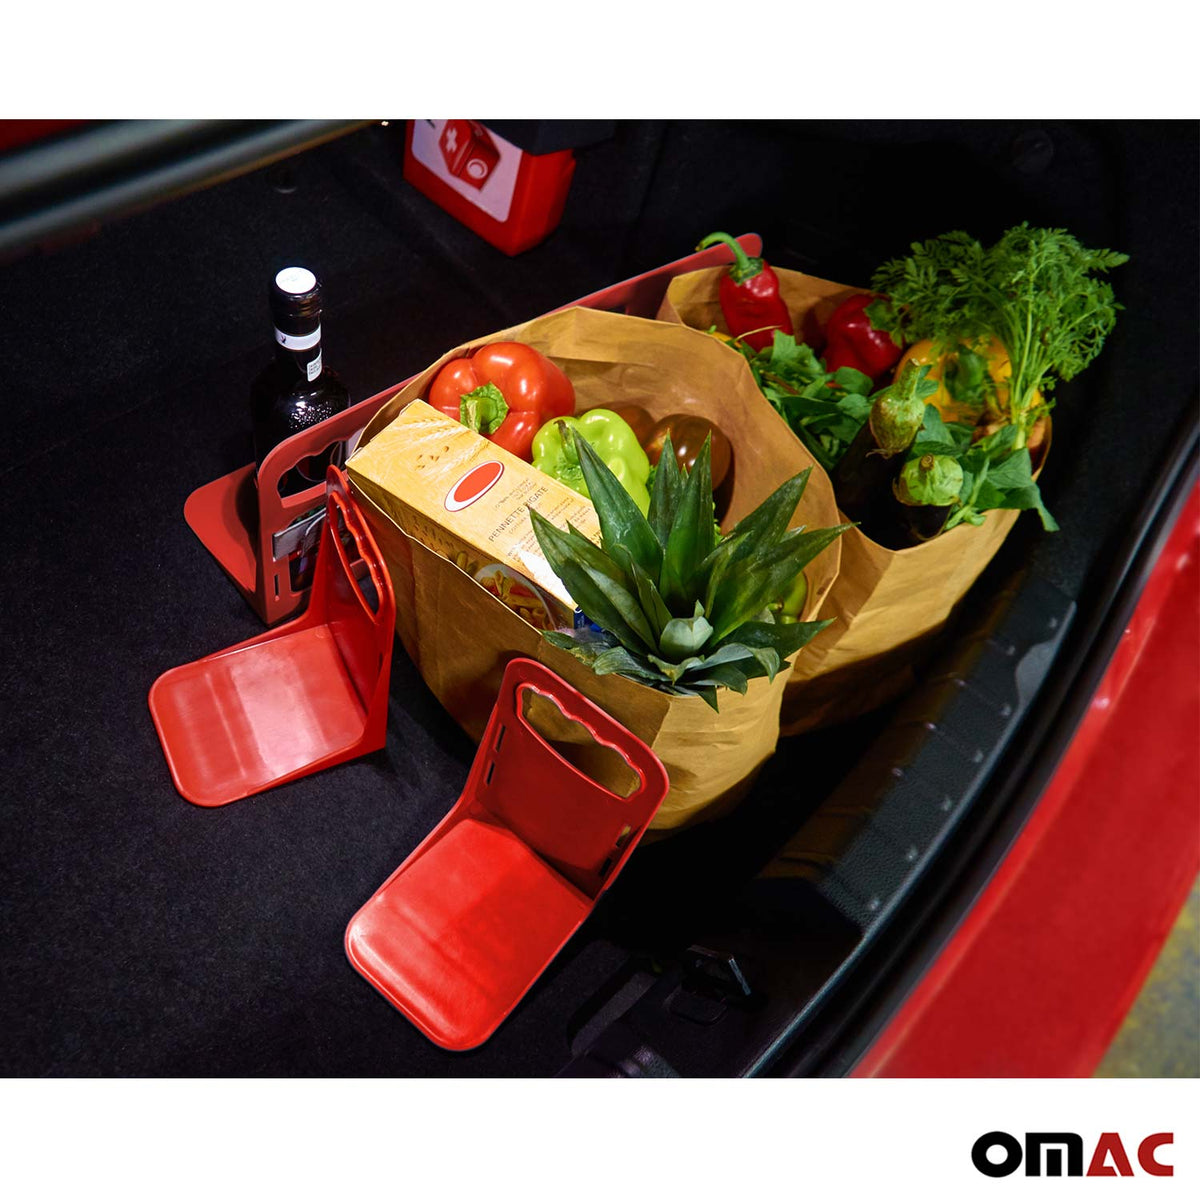 Red Trunk Organizer Velcro Stopper Stand 3 Pcs. For